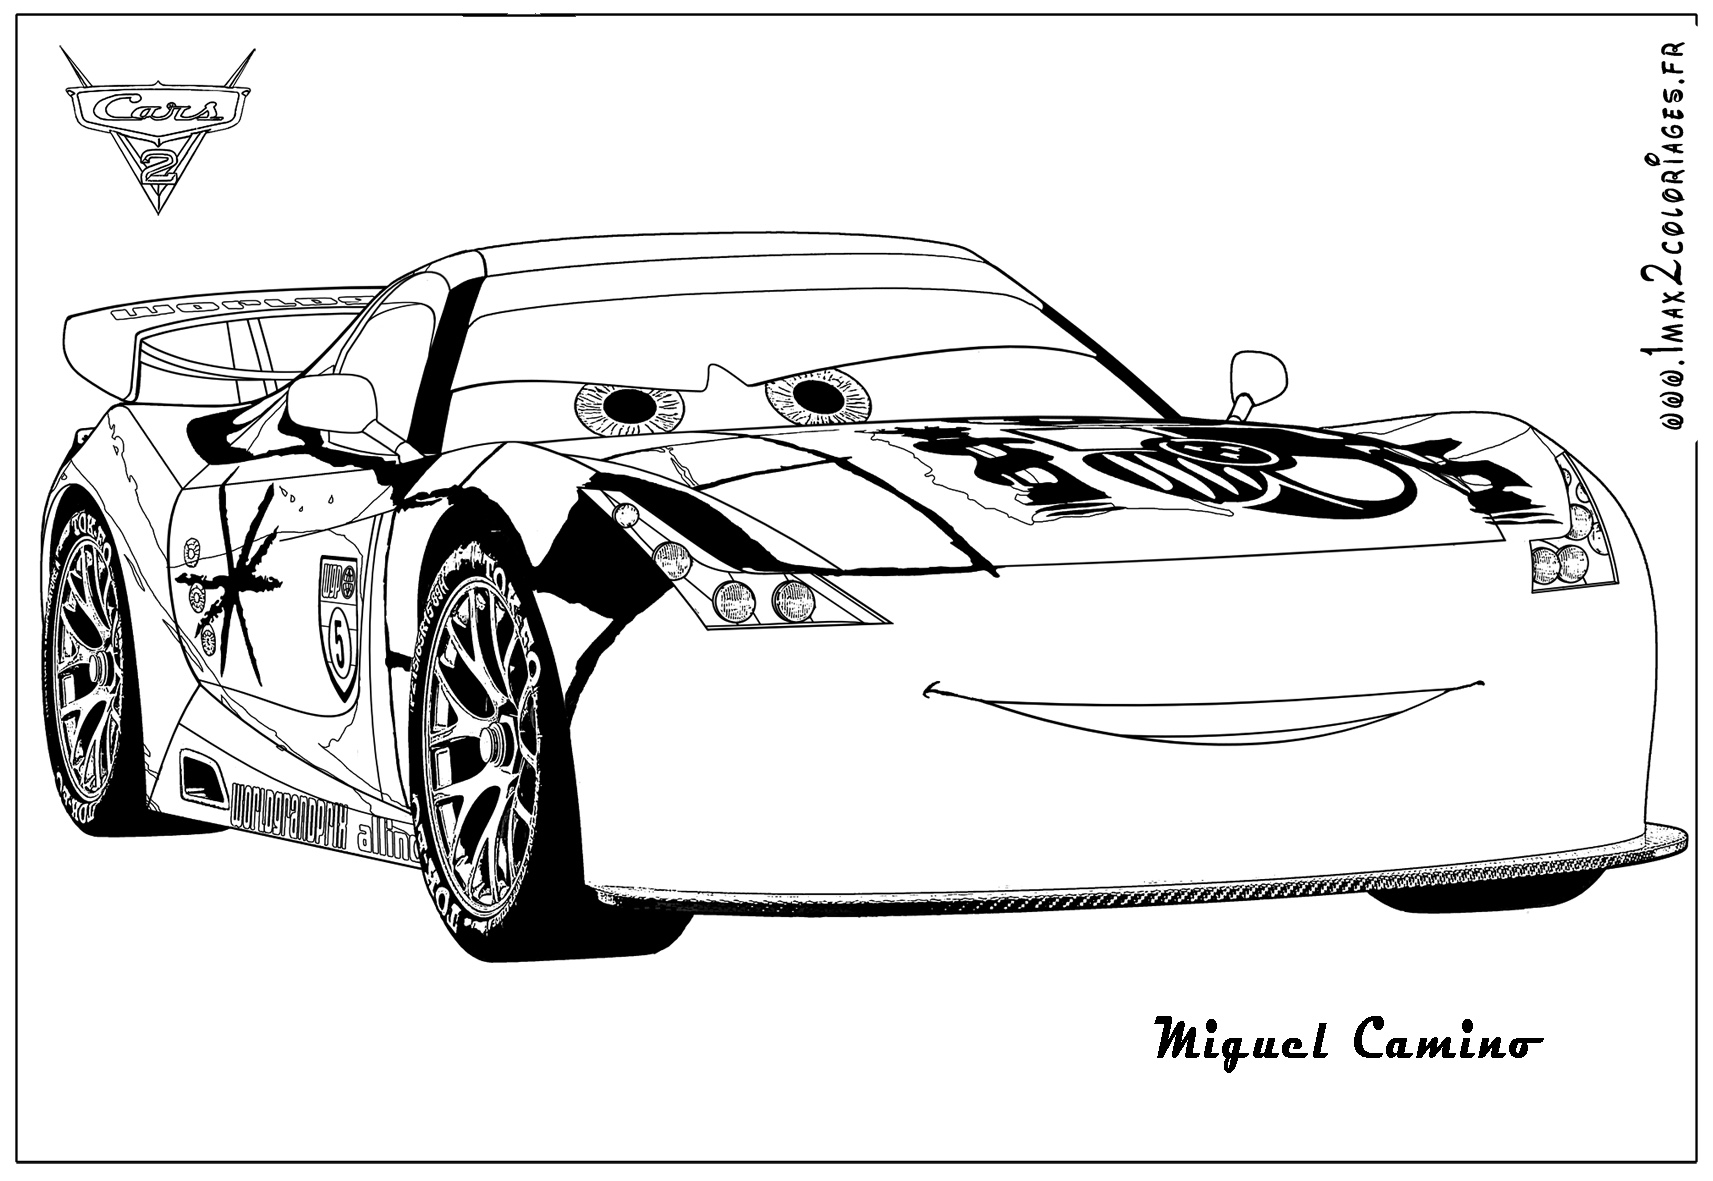 Coloriages Cars 2 Miguel Camino Cars2 Coloriages Les Bagnoles 2